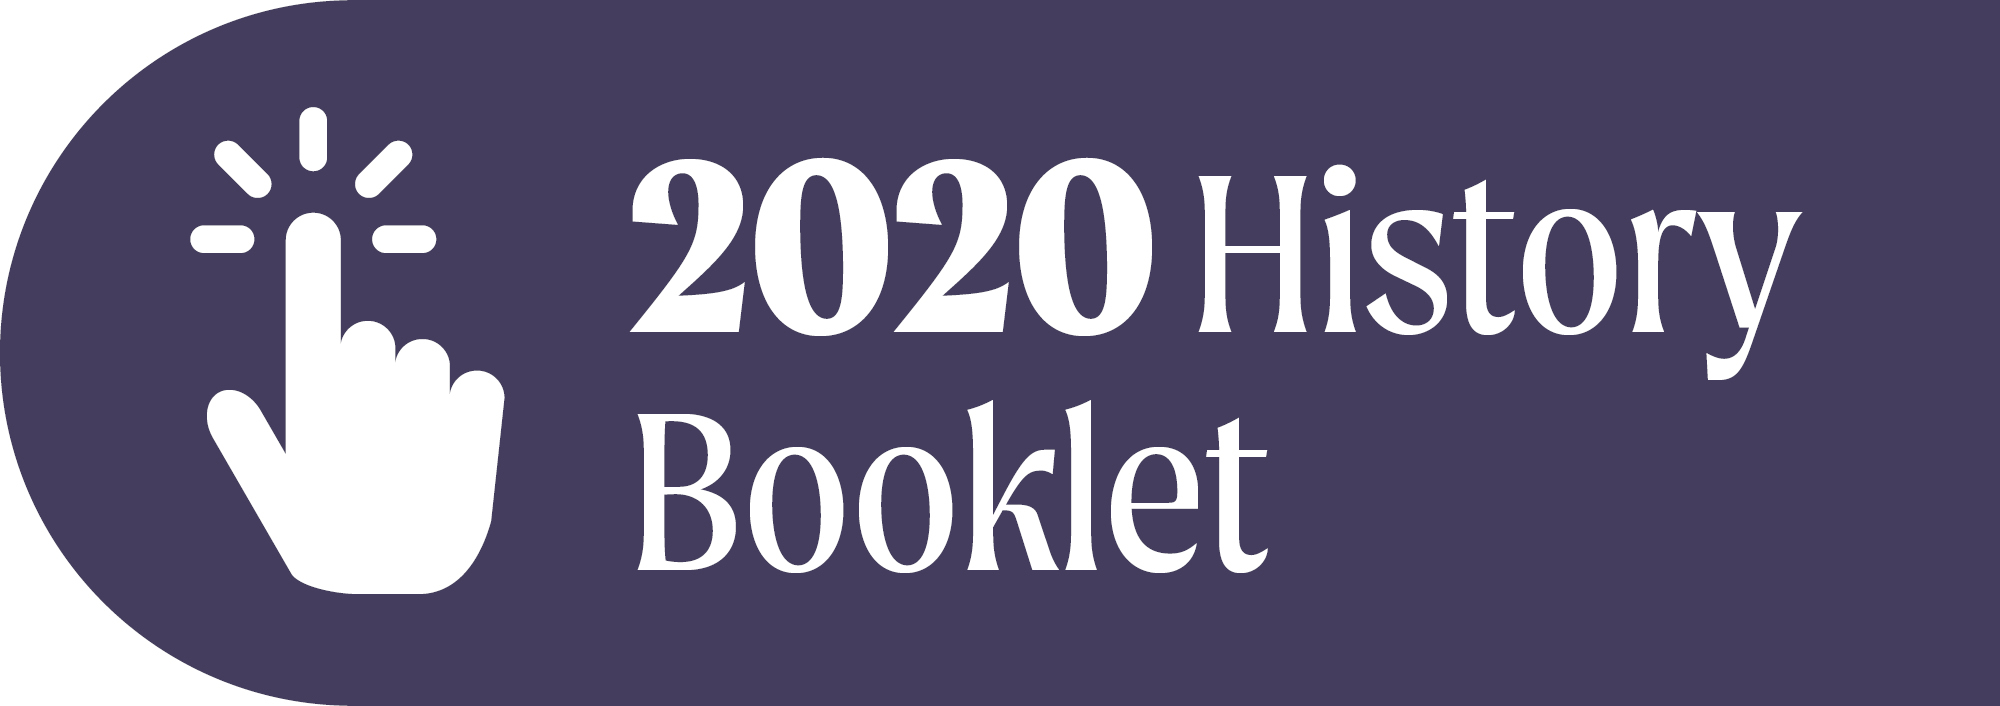 2020 Booklet